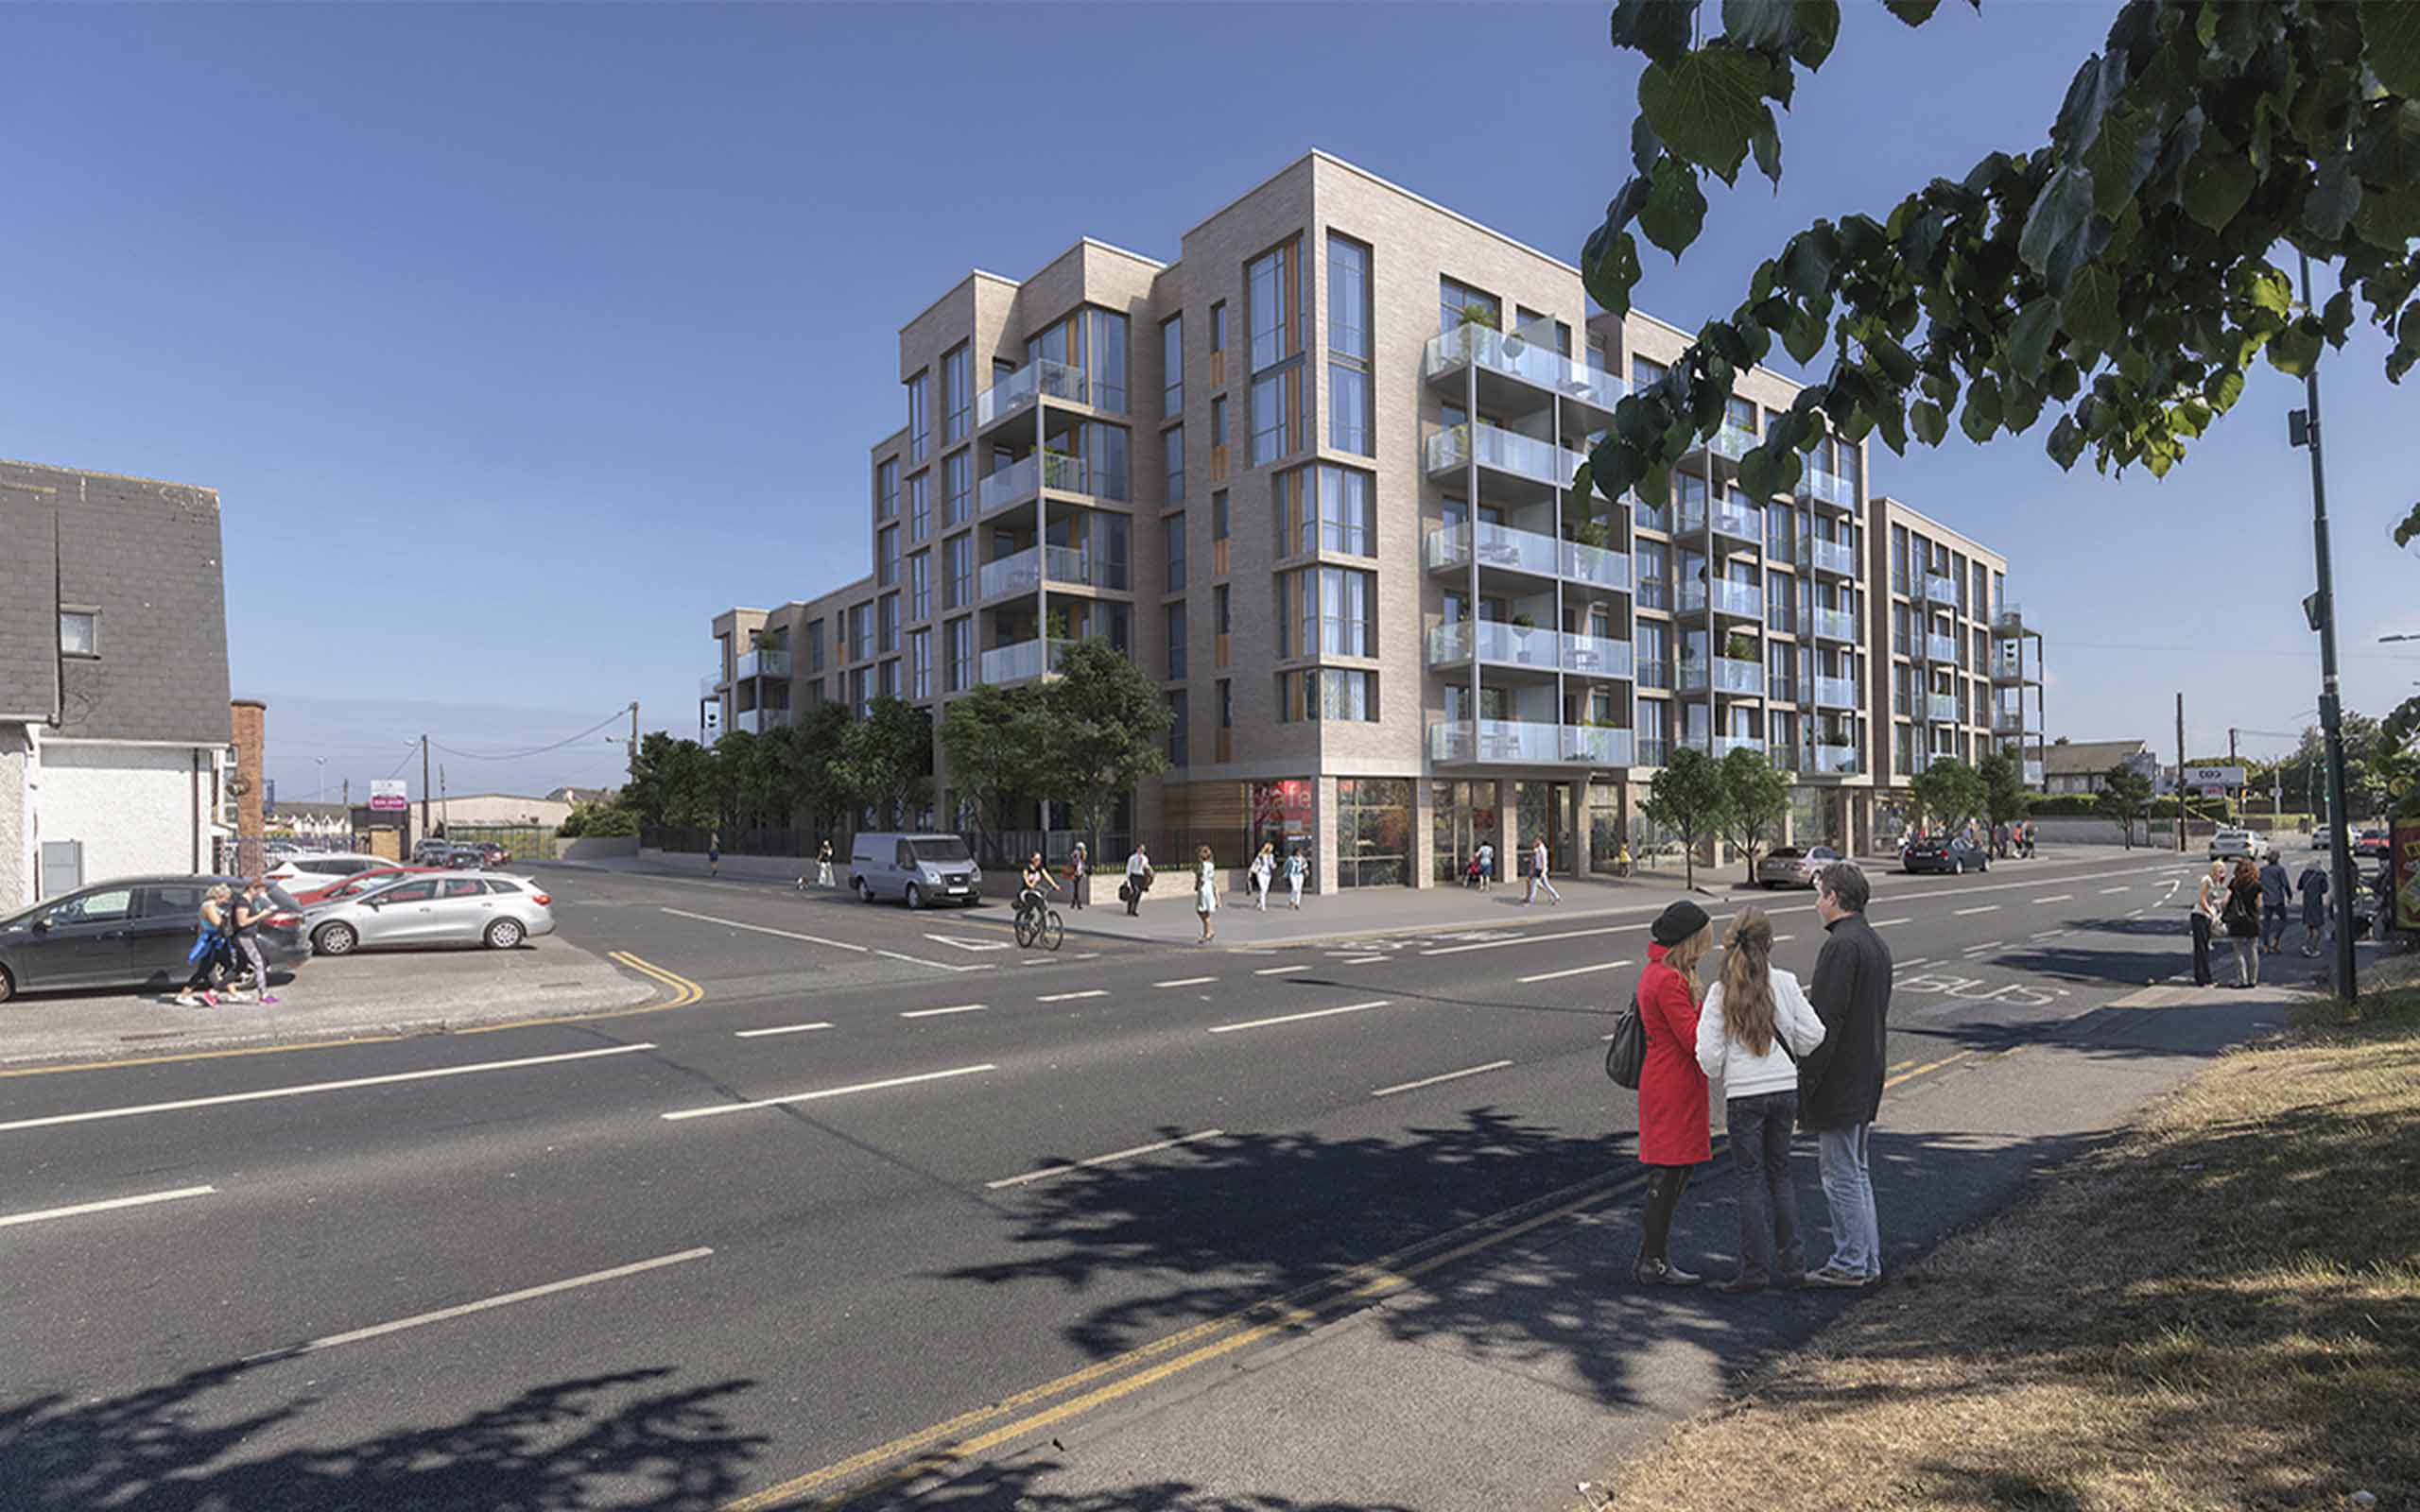 Verified view of proposed mixed-use development at Swiss Cottage, Santry.